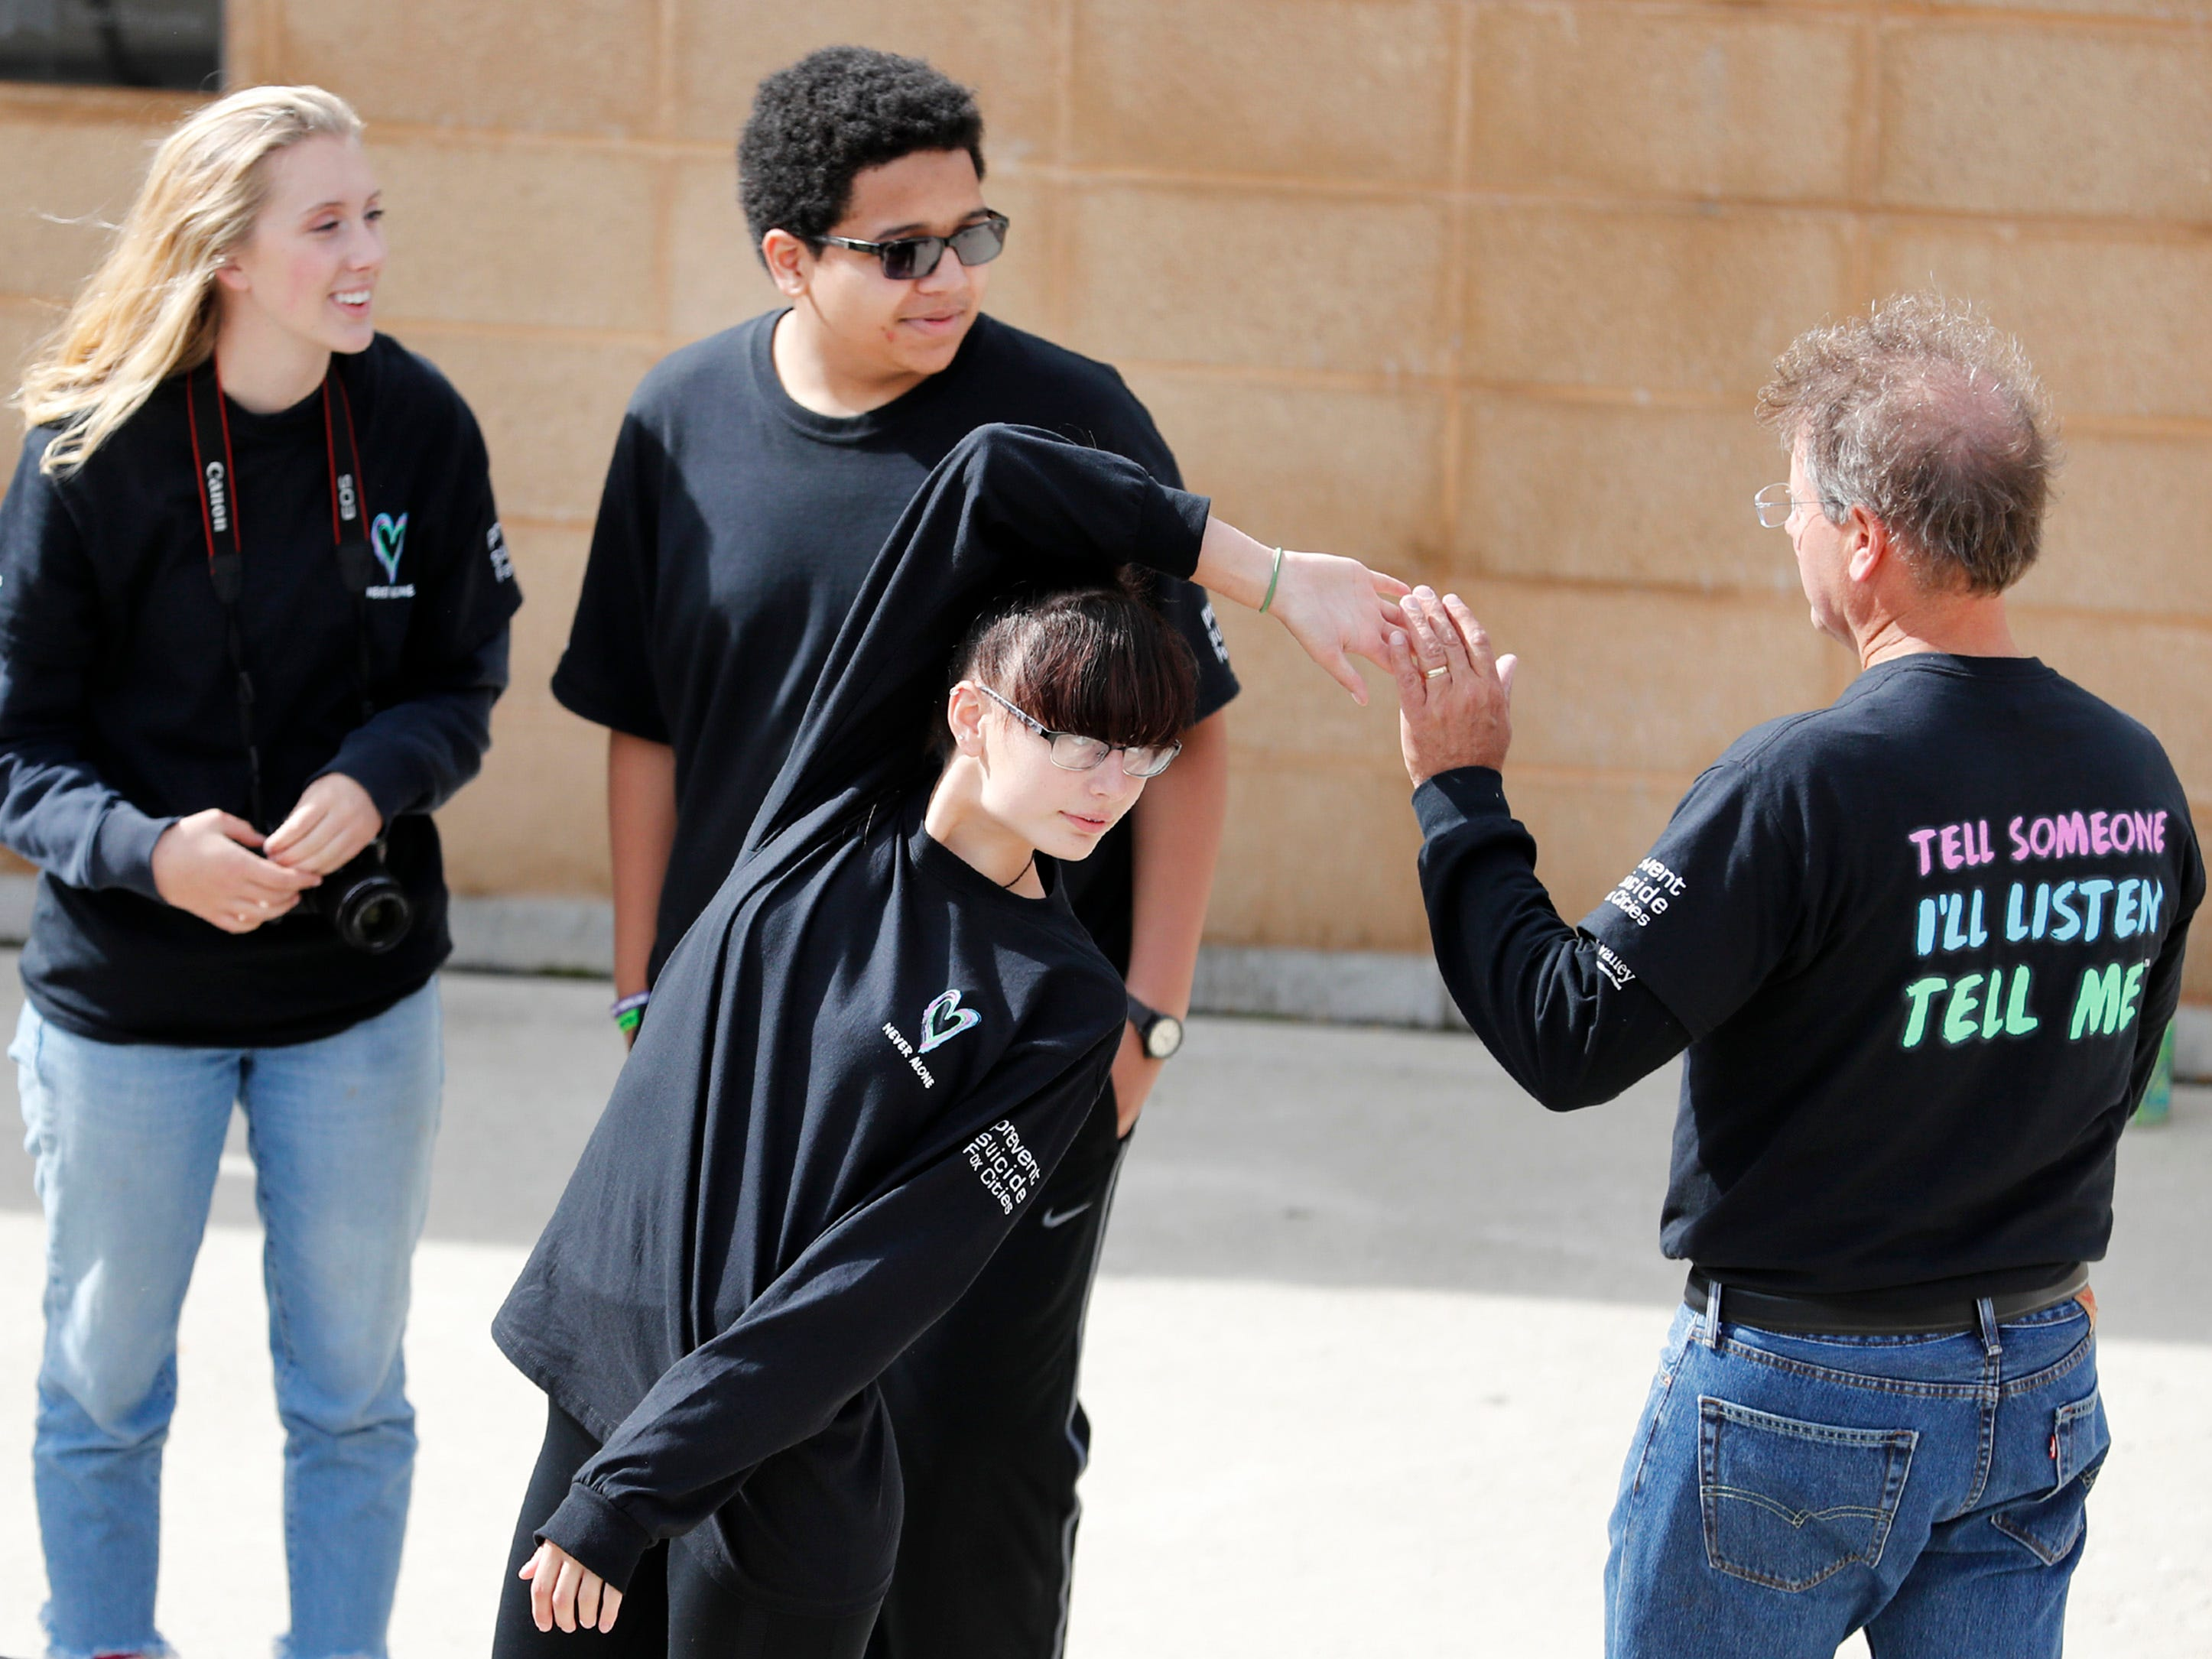 Student organizers of Little Chute High School's mental health wellness fair Amidala Czaja and Keaton Duffeck stand with the third organizer, Montannah Weiss, as she high fives Little Chute school counselor Kevin Pratt Friday, Sept. 21, 2018, in Little Chute, Wis.